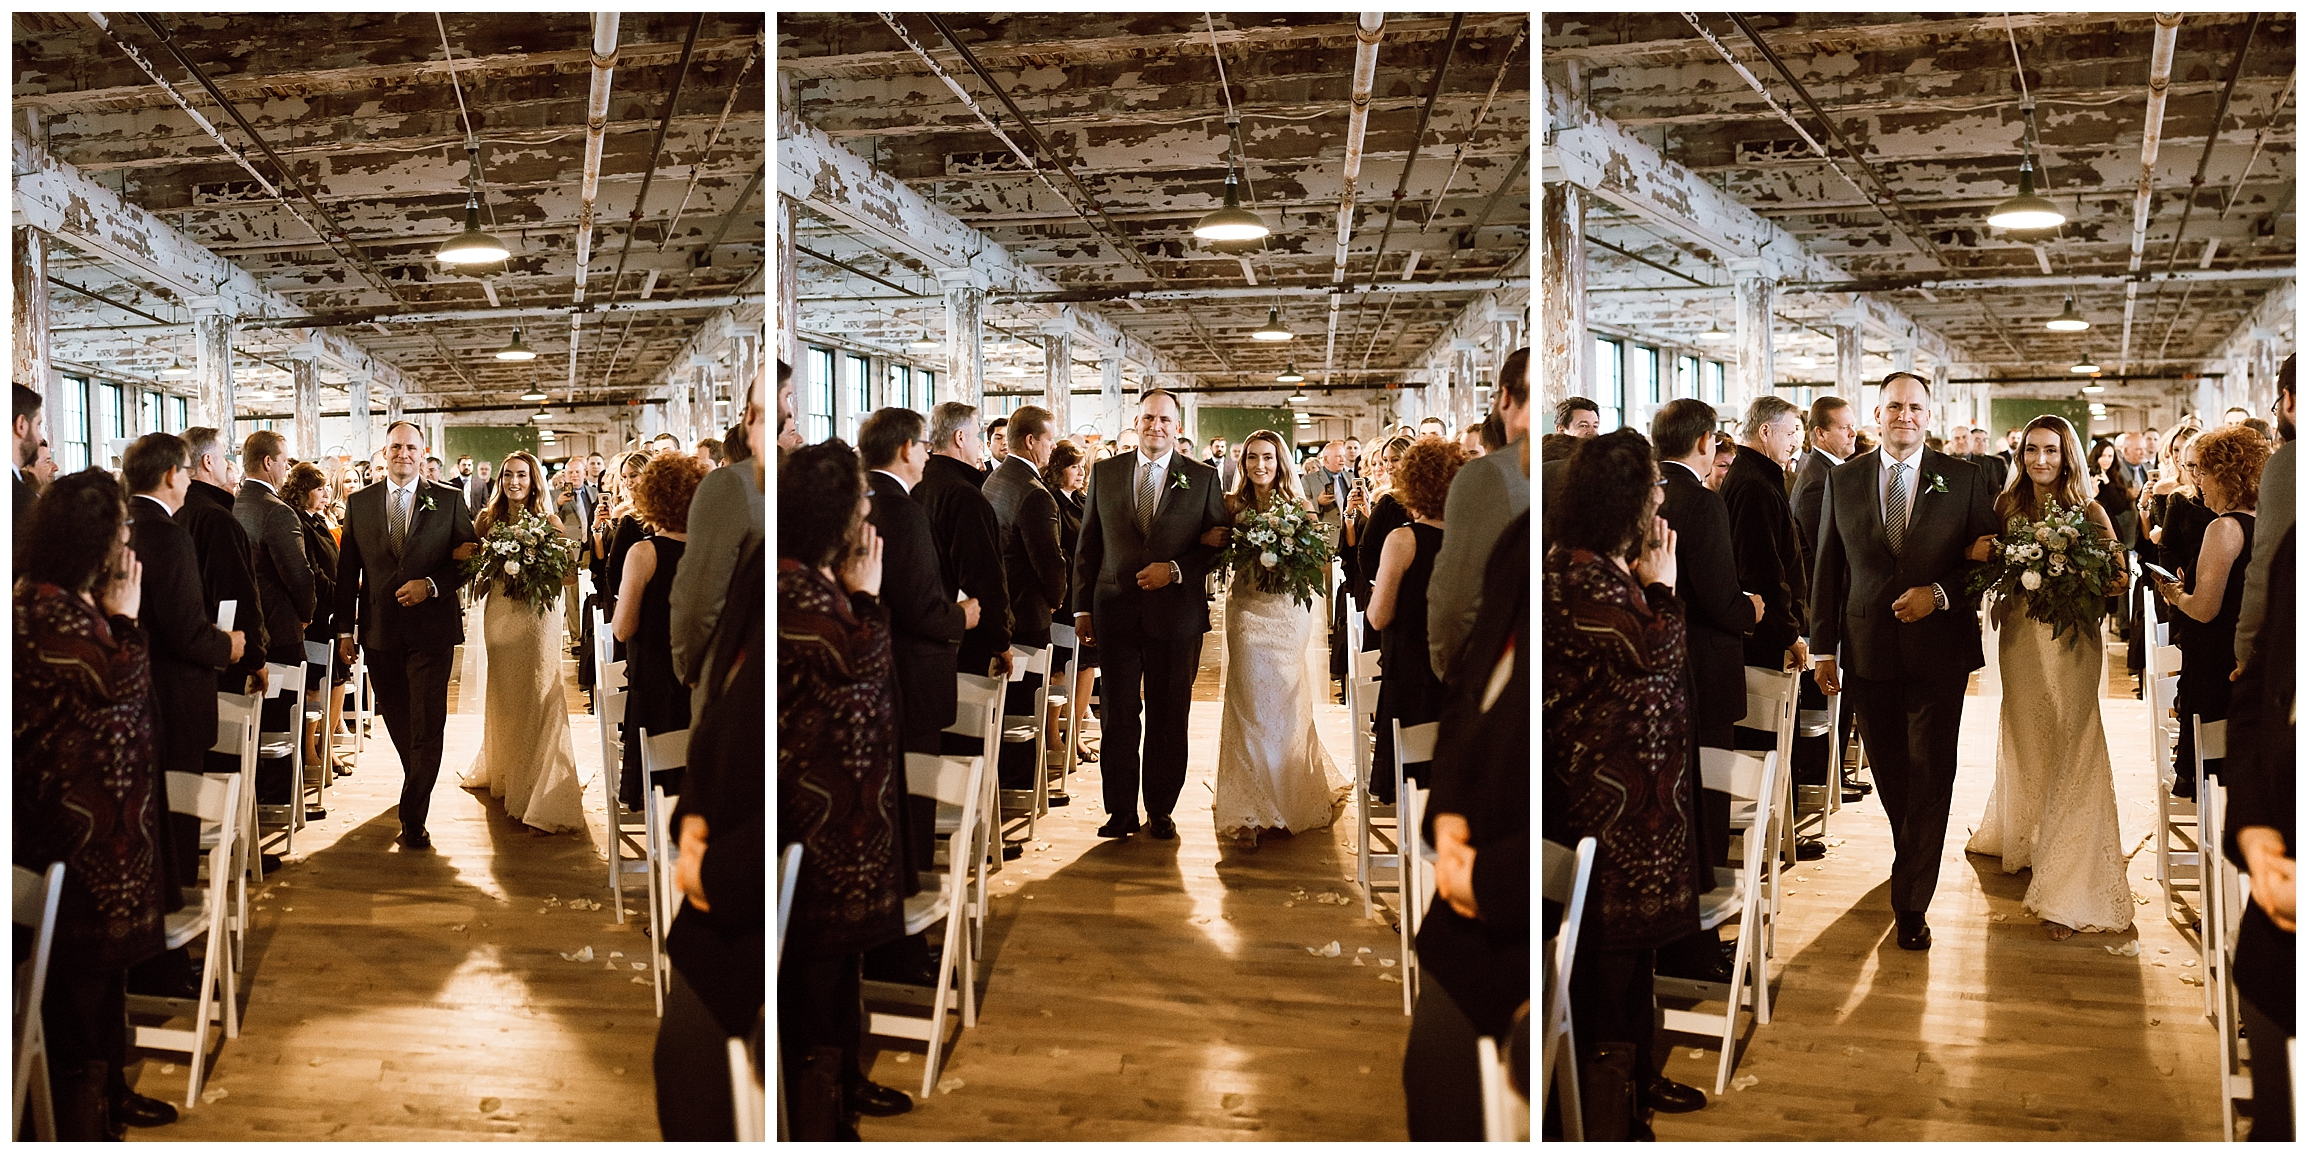 Katie_Vonasek_Photography_Ford_Piquette_Plant_Wedding_Detroit64.JPG